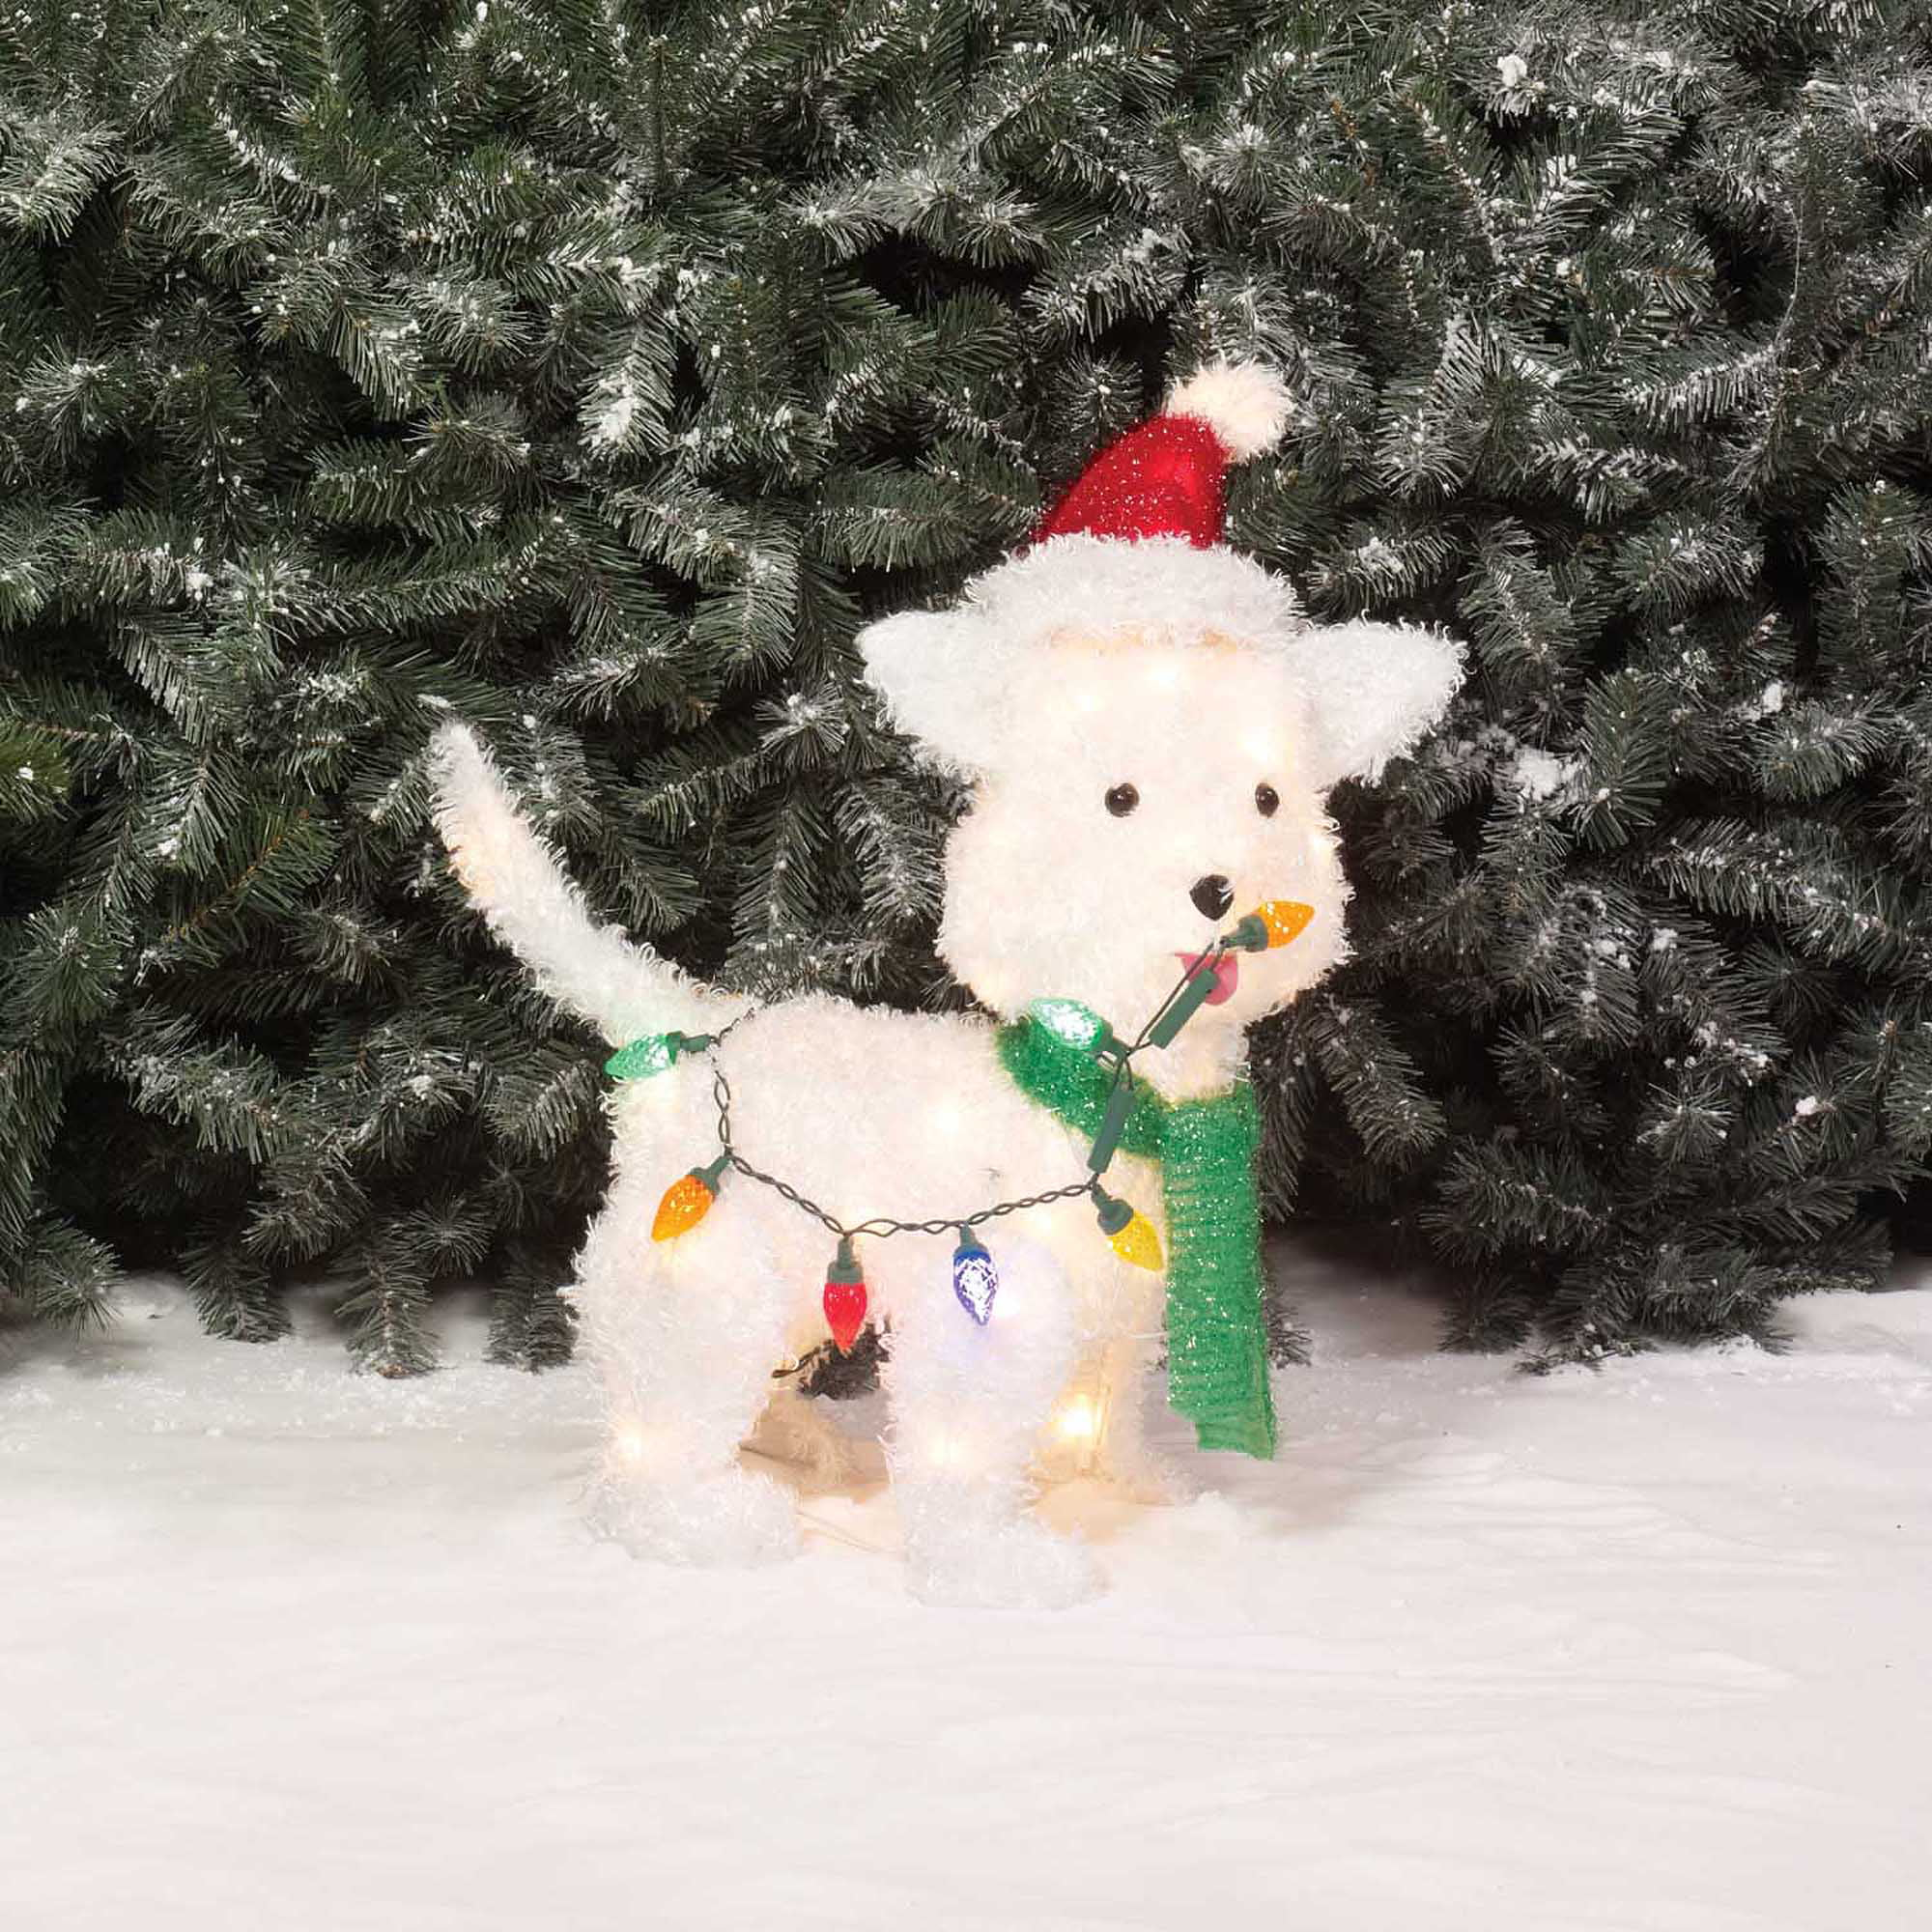 holiday time christmas decor 24 fluffy dog light sculpture walmartcom - Walmart Com Christmas Decorations